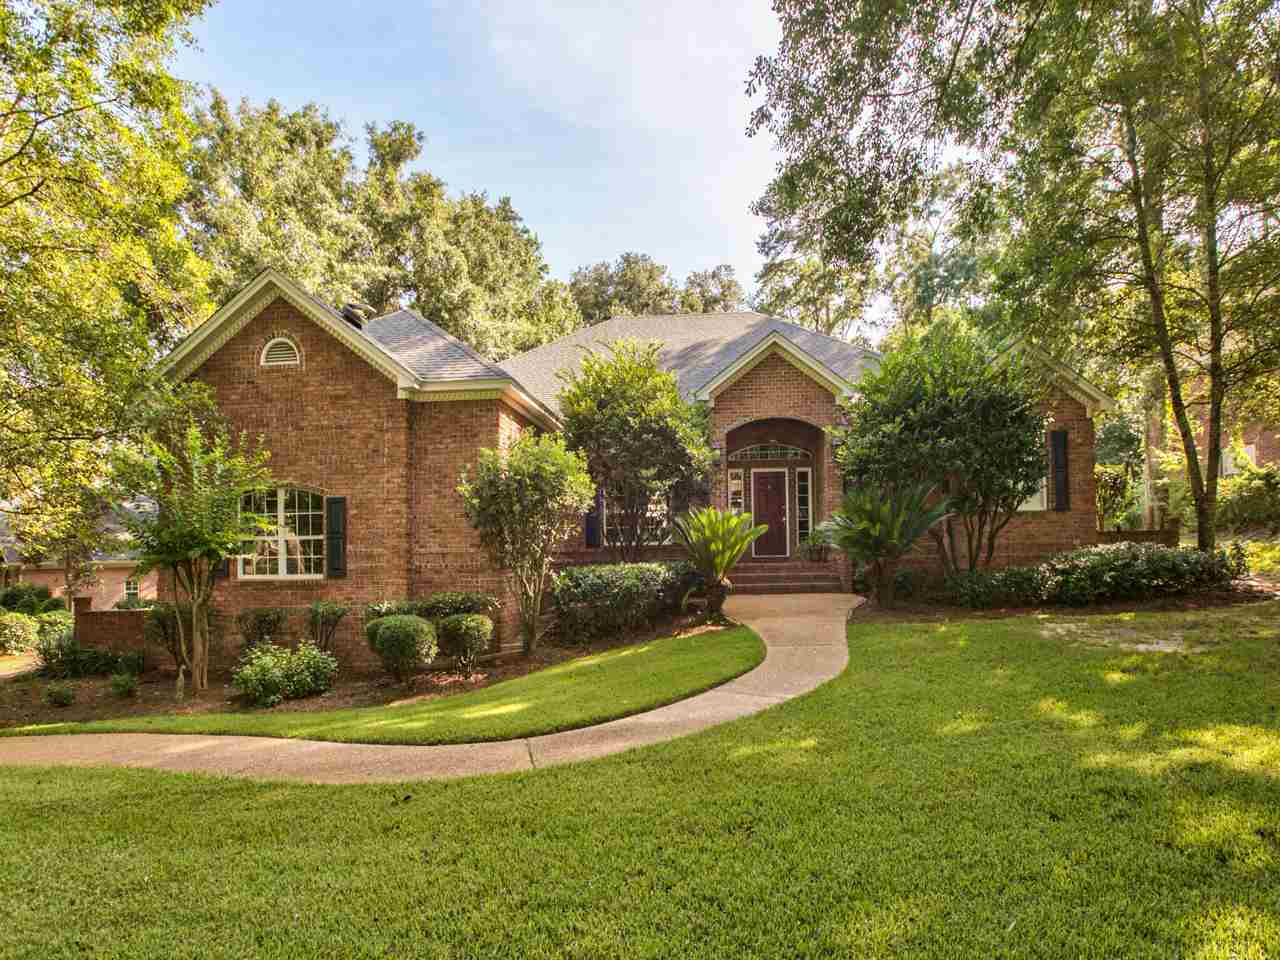 $575,000 - 4Br/5Ba -  for Sale in Golden Eagle, Tallahassee